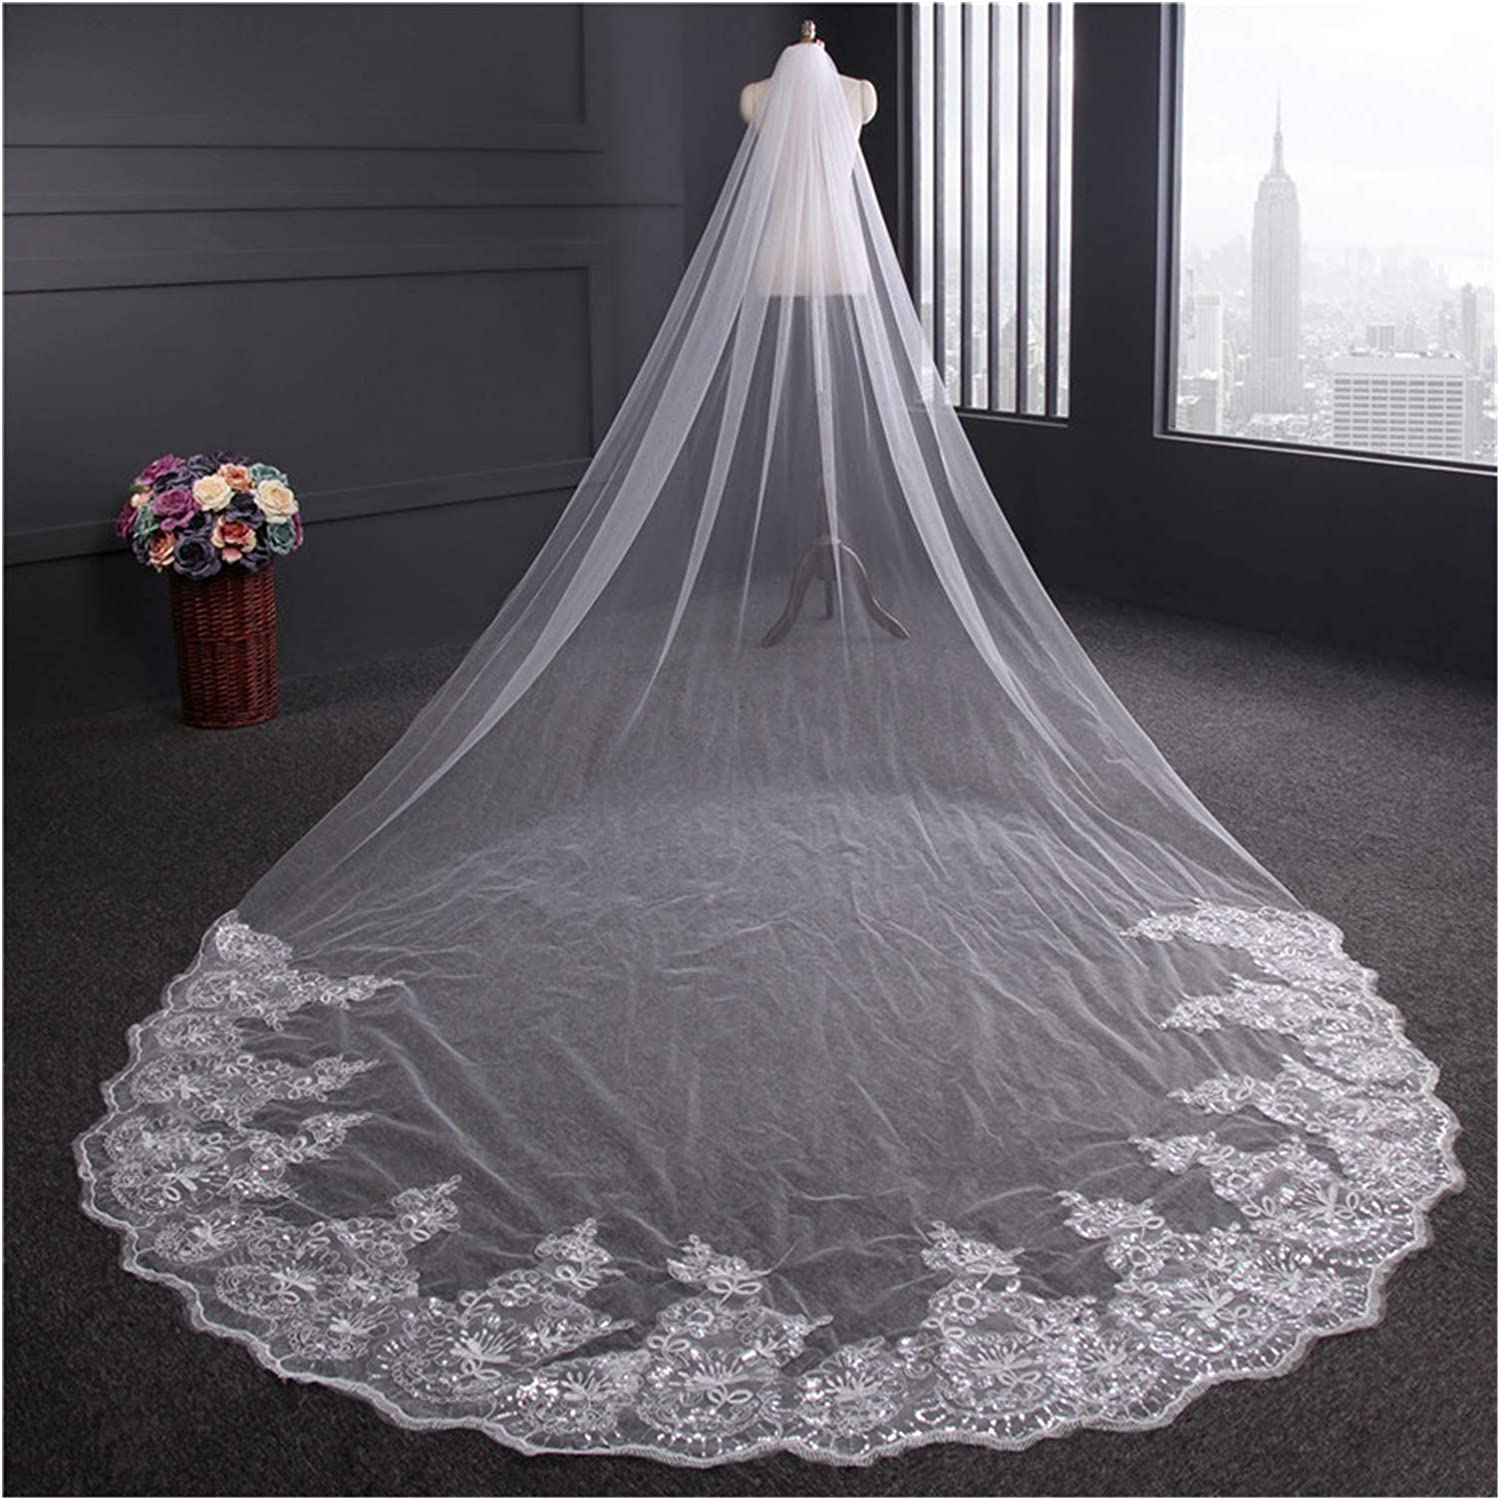 Moonlight Star 4 Sale special price Meter Cathedral Wedding Veils Long Br High material Lace Edge